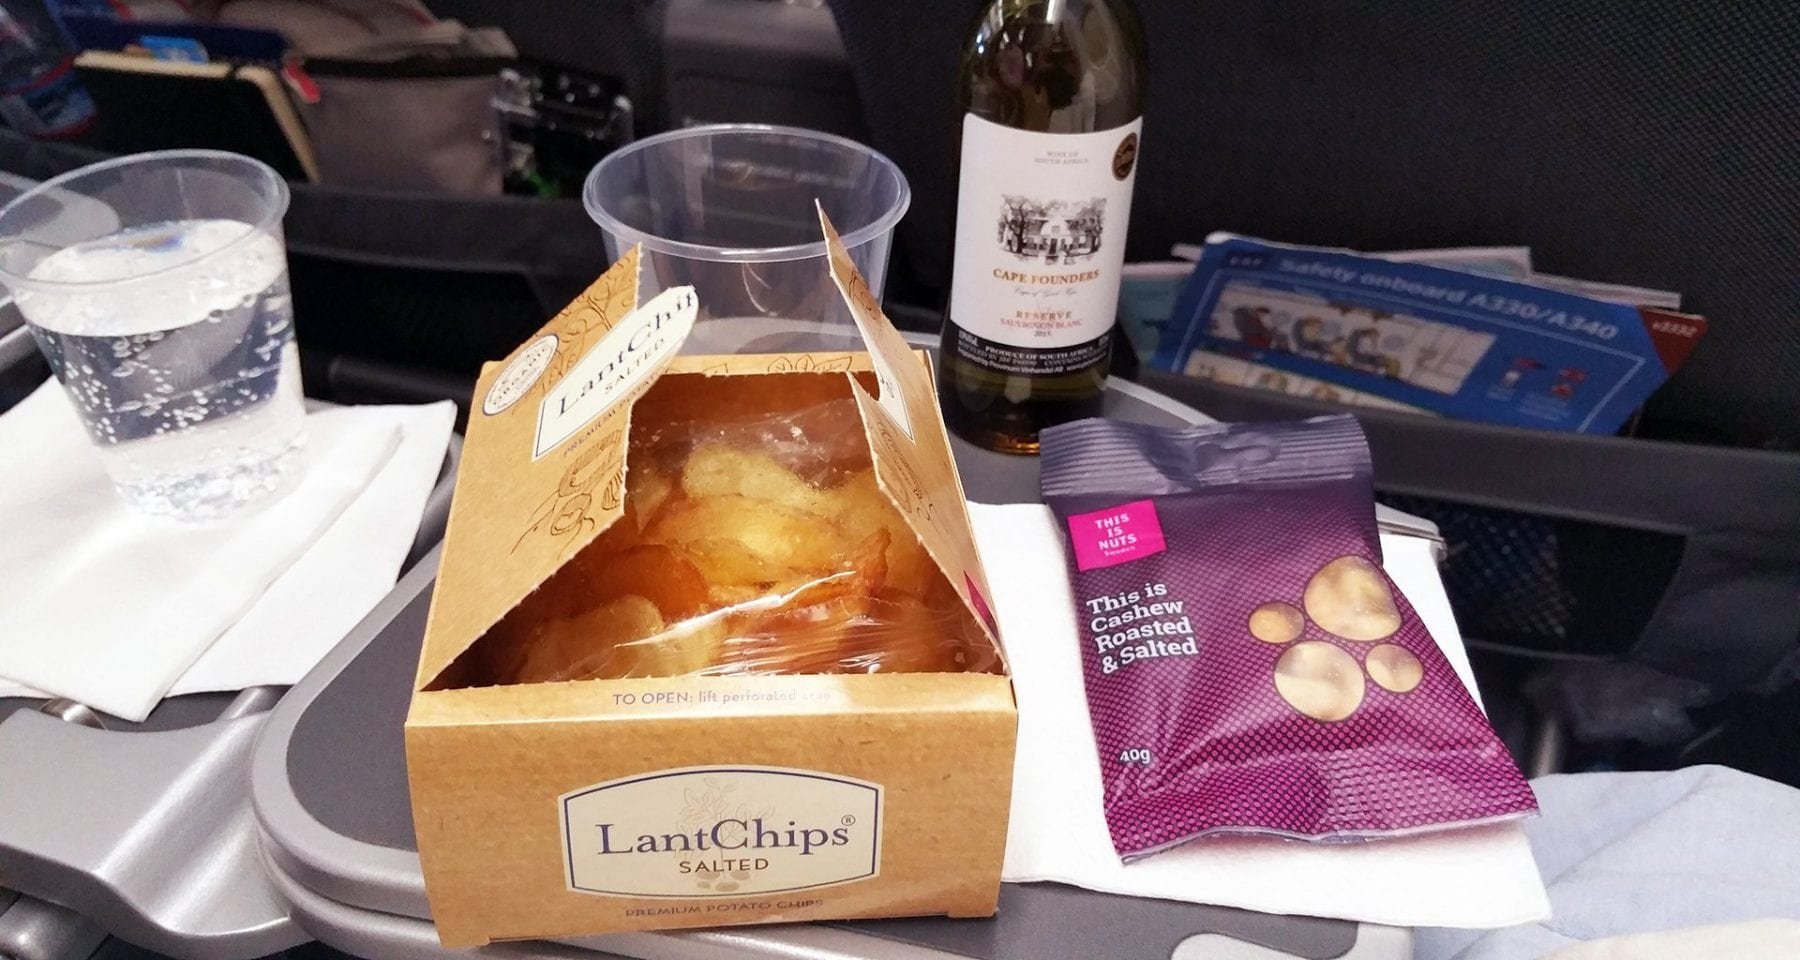 SAS Scandinavian airlines premium economy class snacks